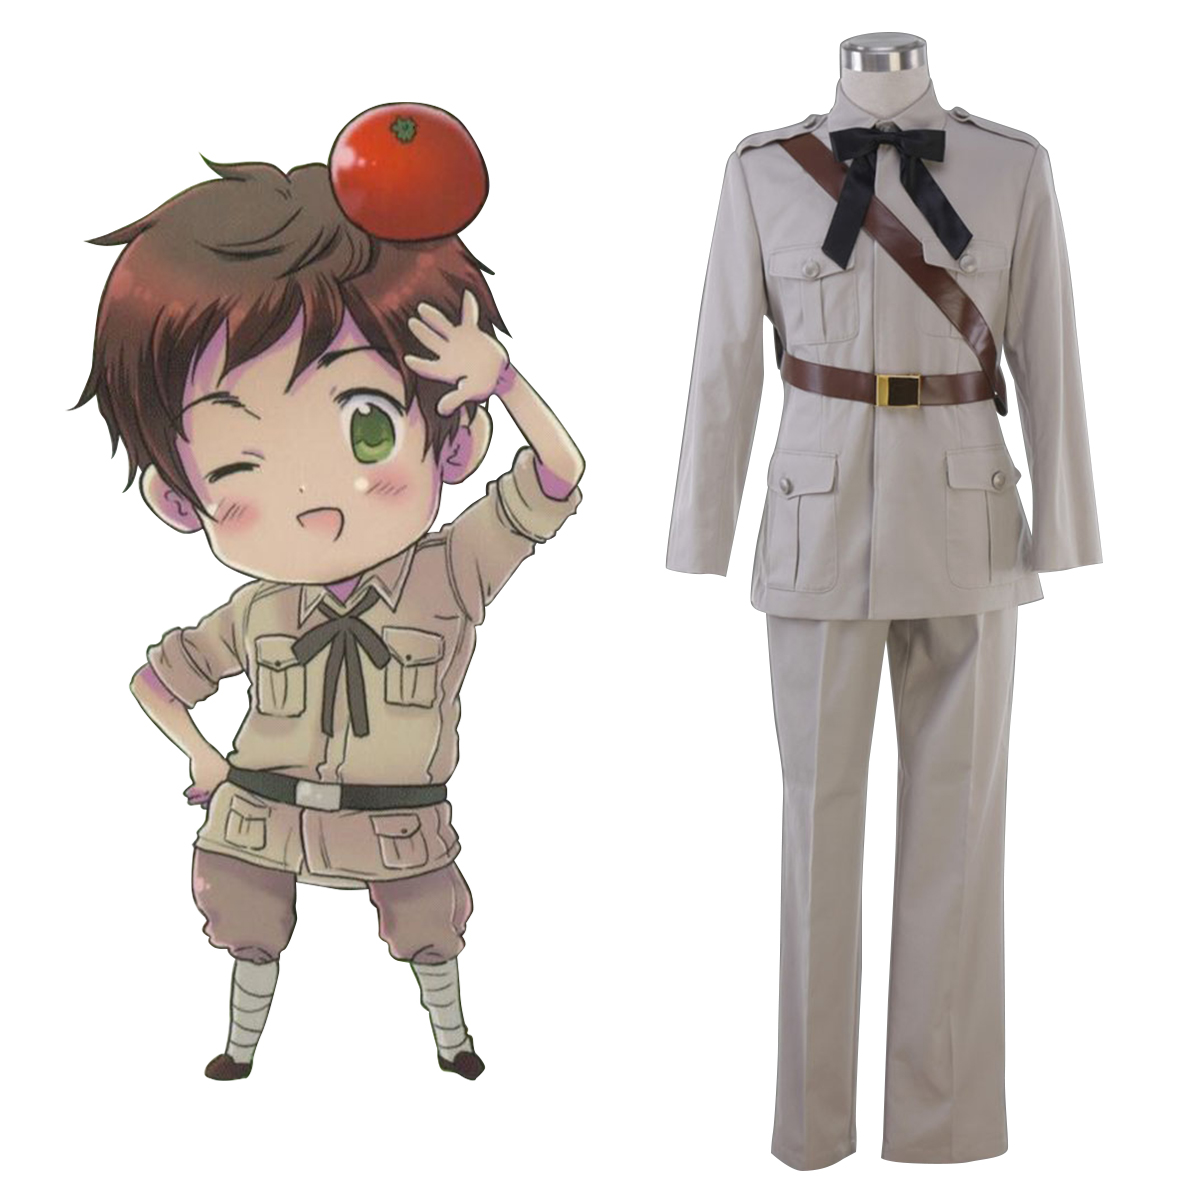 Axis Powers Hetalia Spain Antonio Fernandez Carriedo 1 Anime Cosplay Costumes Outfit